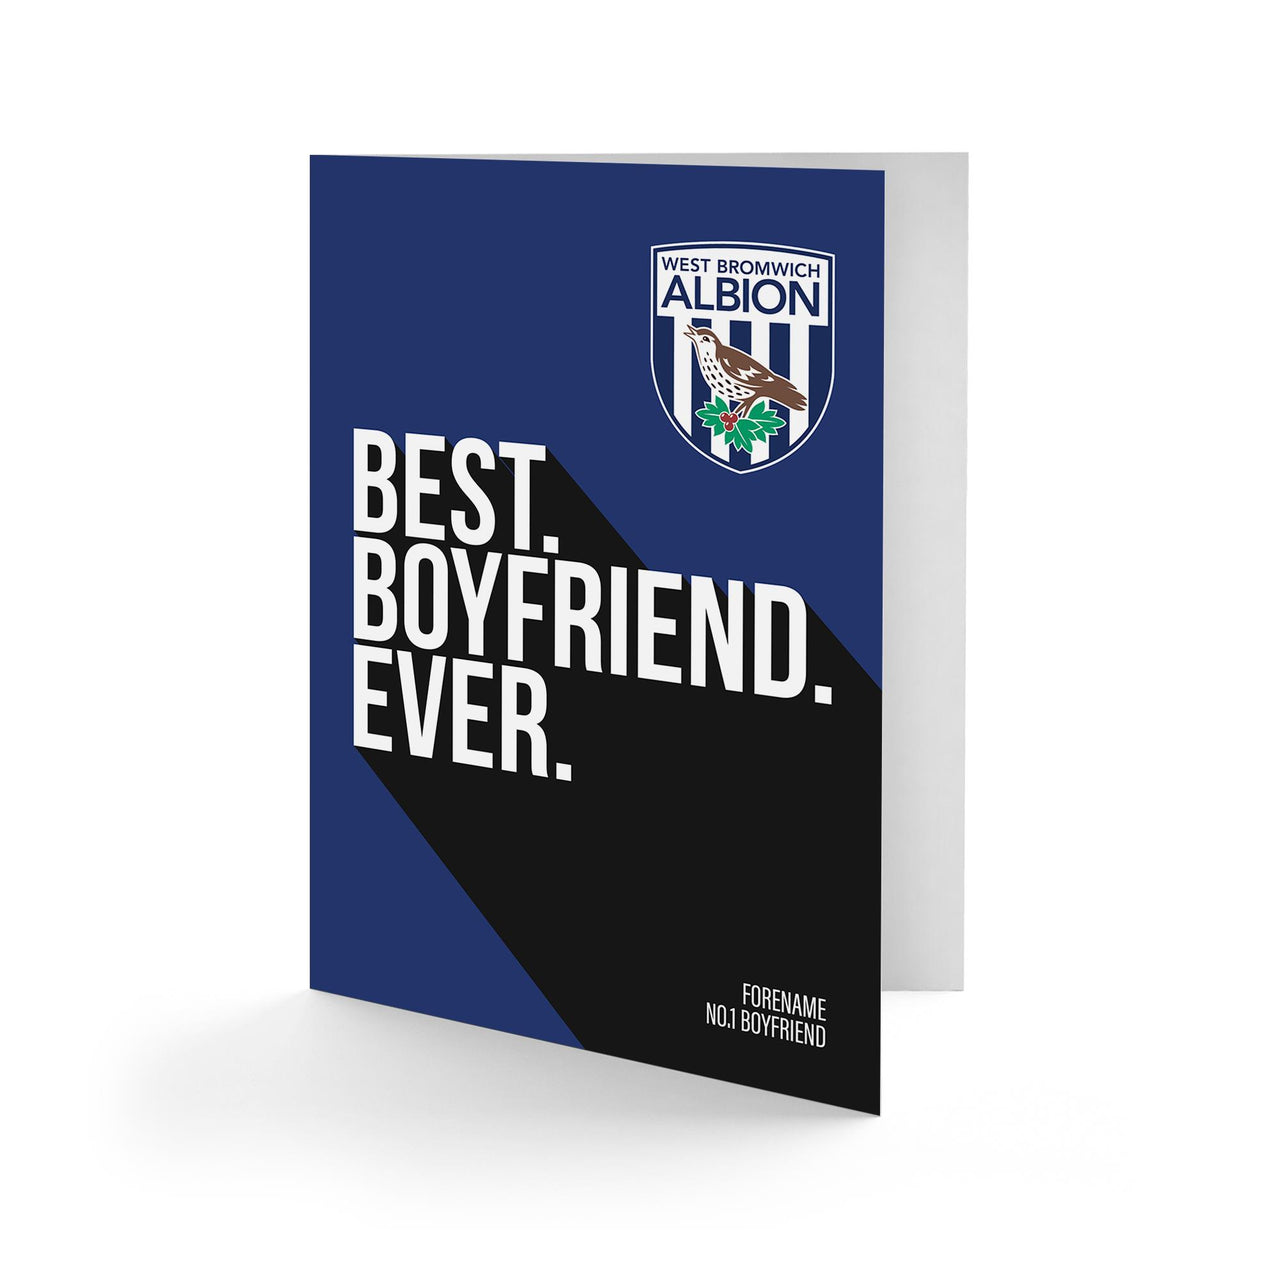 West Bromwich Albion Best Boyfriend Ever Card